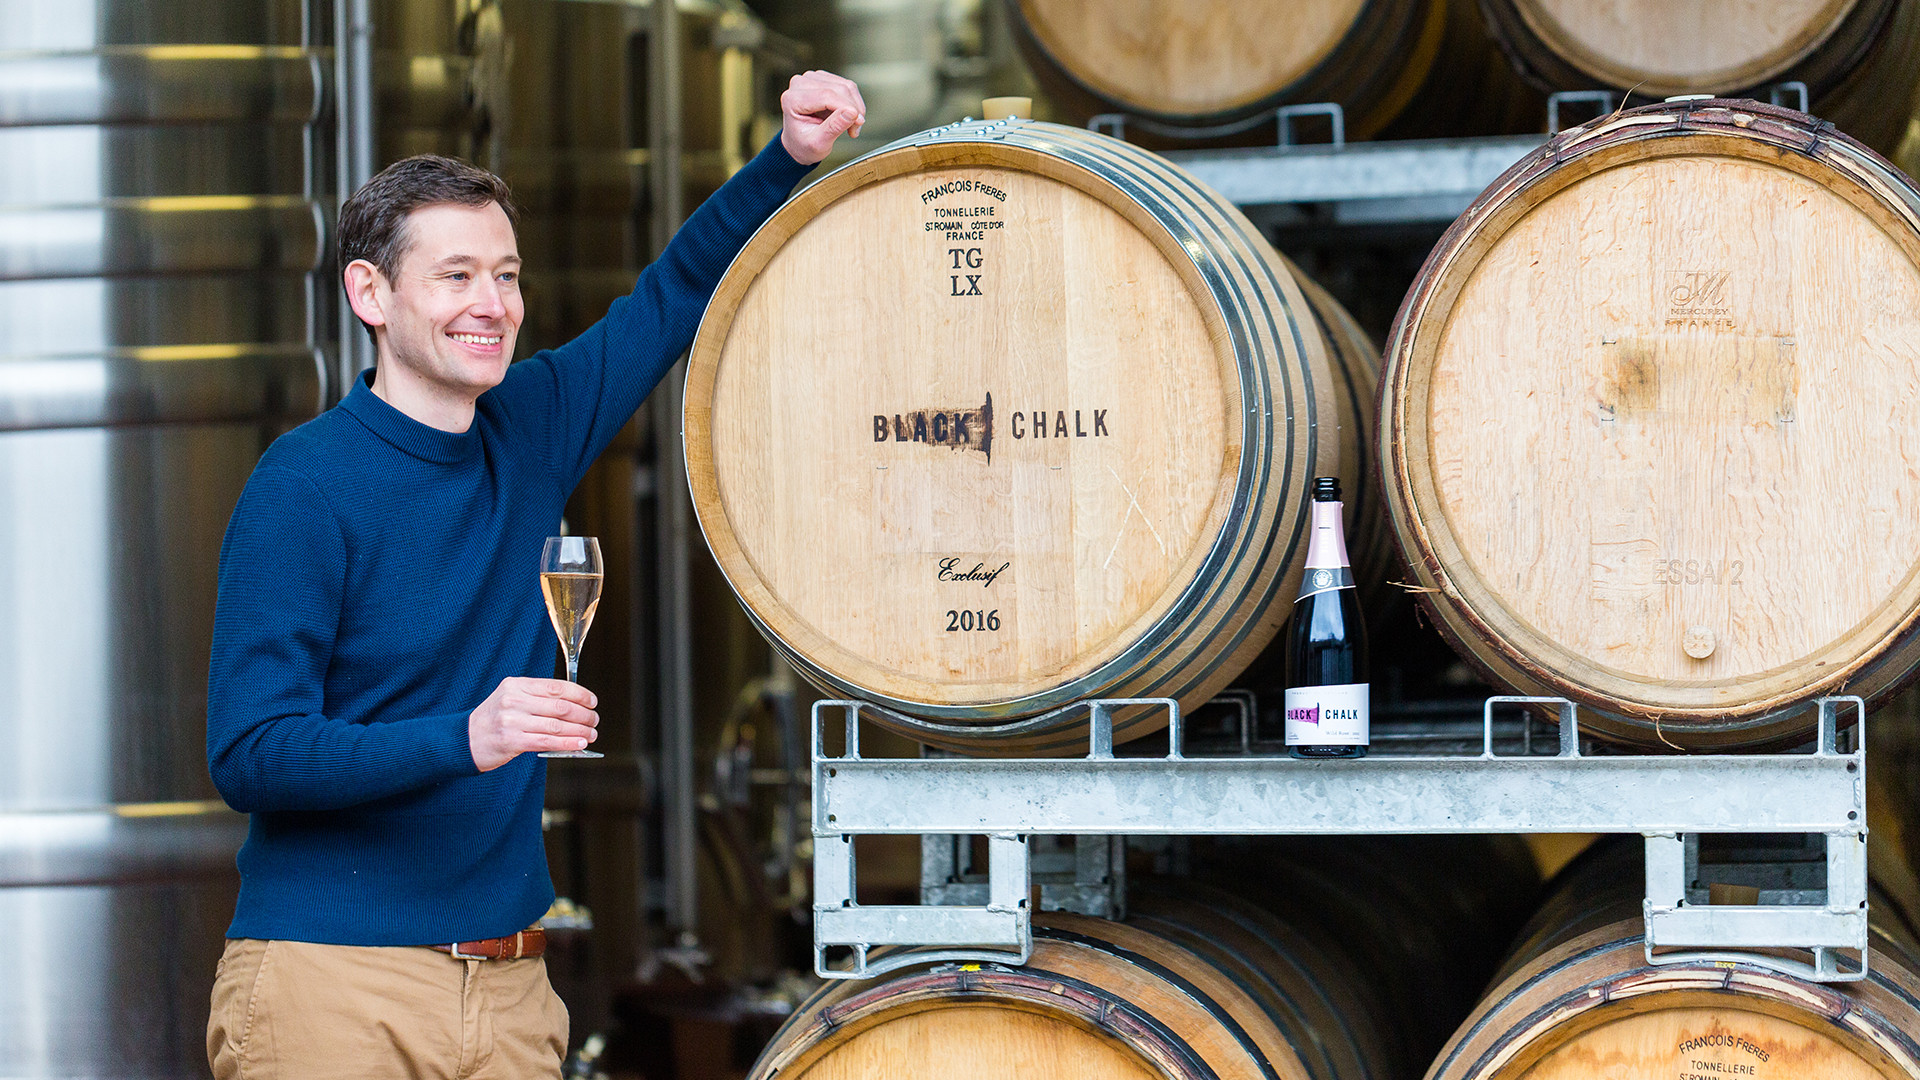 Jacob Leadley, winemaker and CEO of Black Chalk